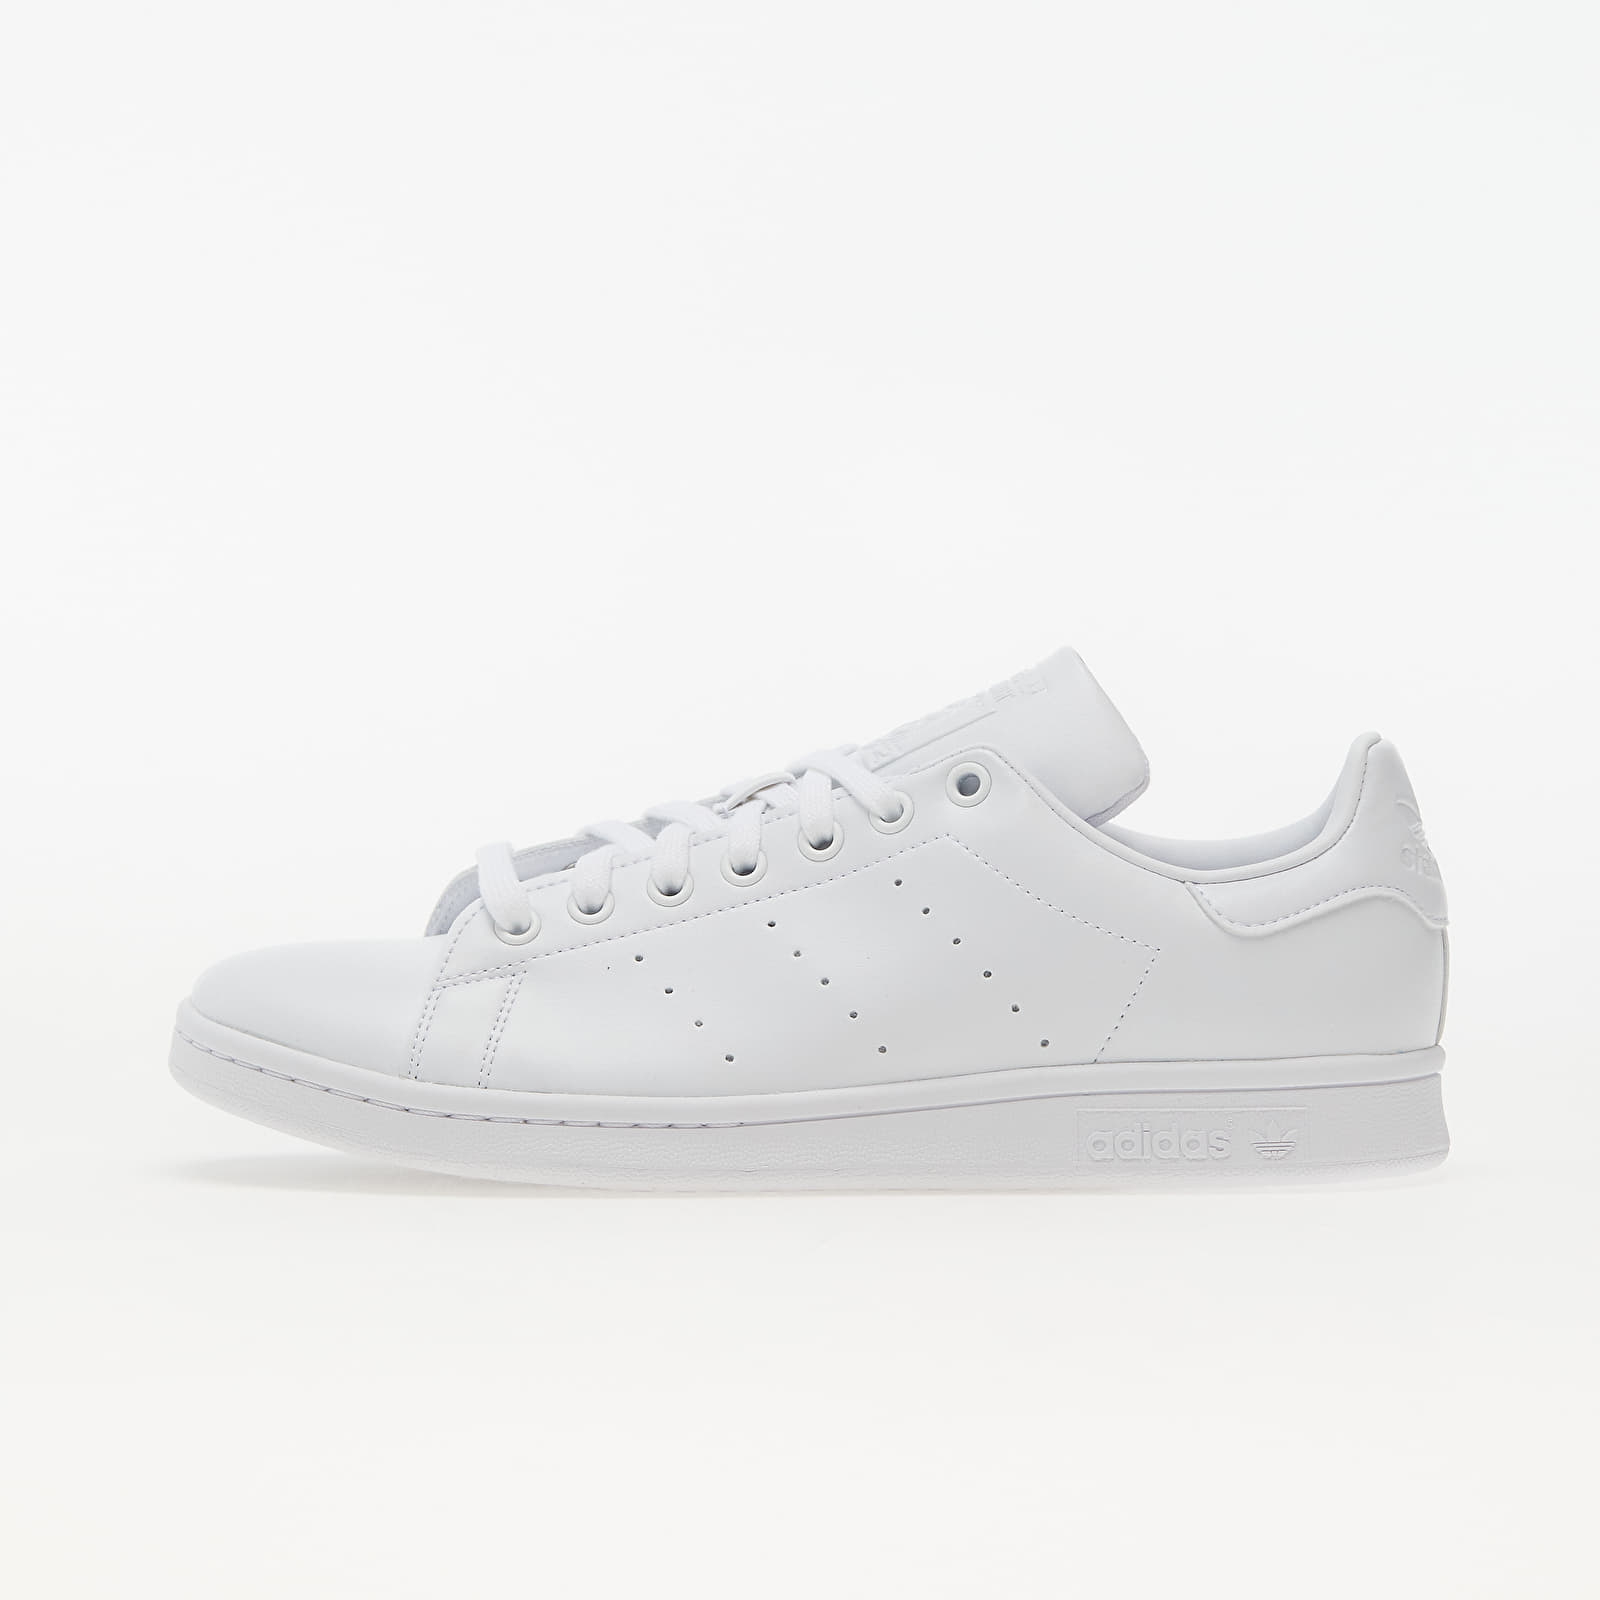 adidas Stan Smith Ftw White/ Ftw White/ Core Black EUR 44